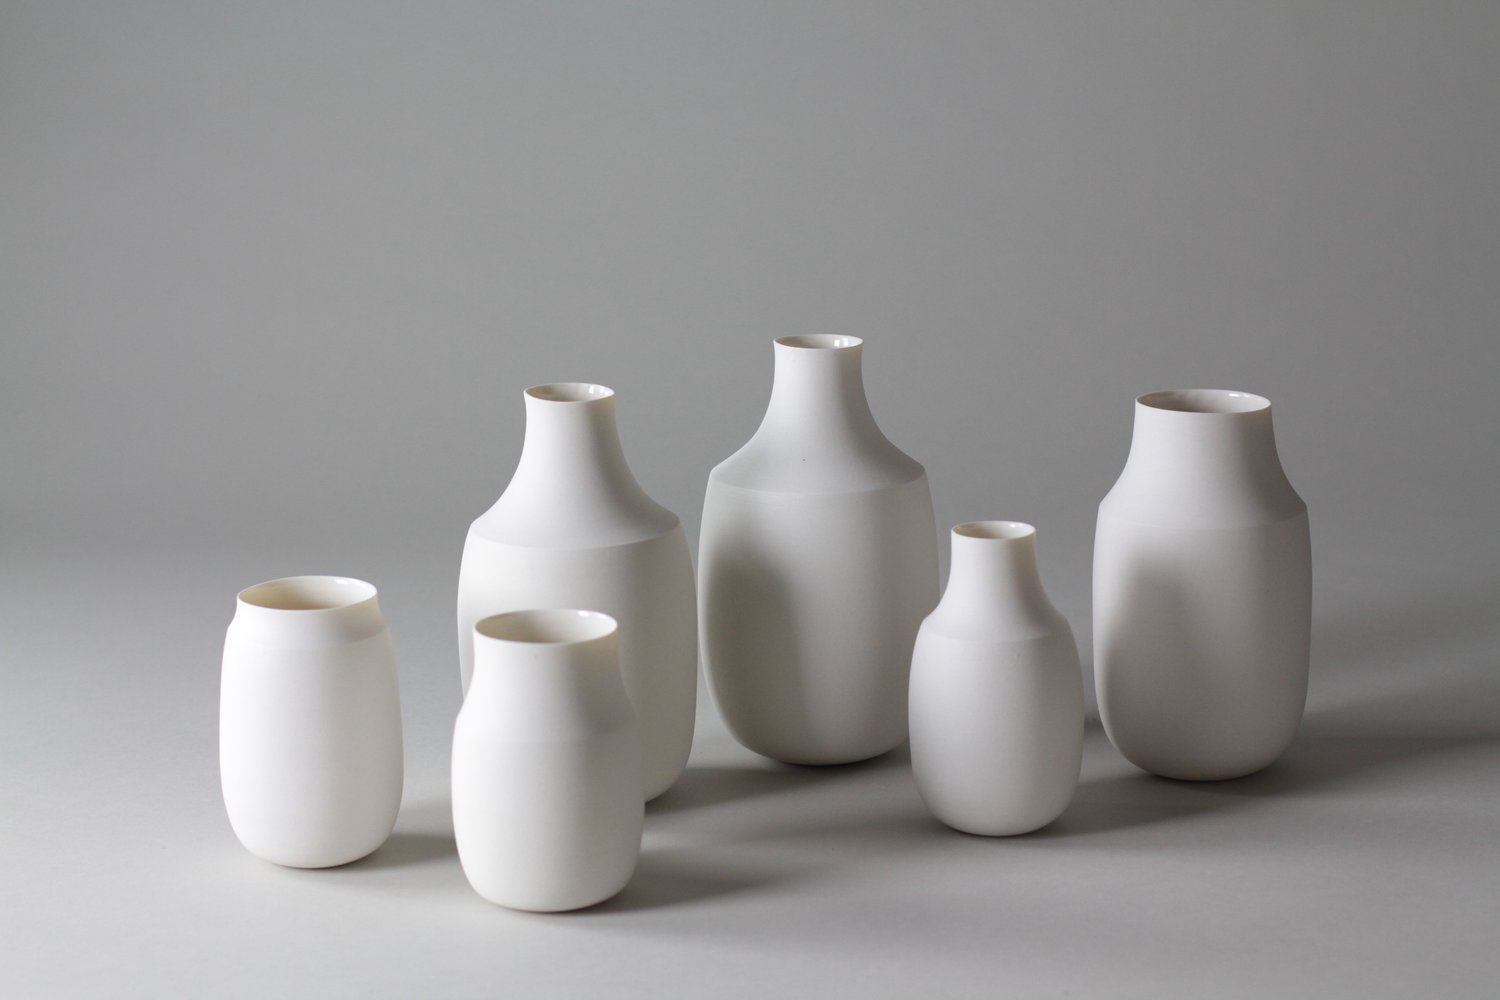 I've said it before and I'll say it again, simple is always beautiful. i'm obsessed with These ceramic vases by Lilith Rocket.